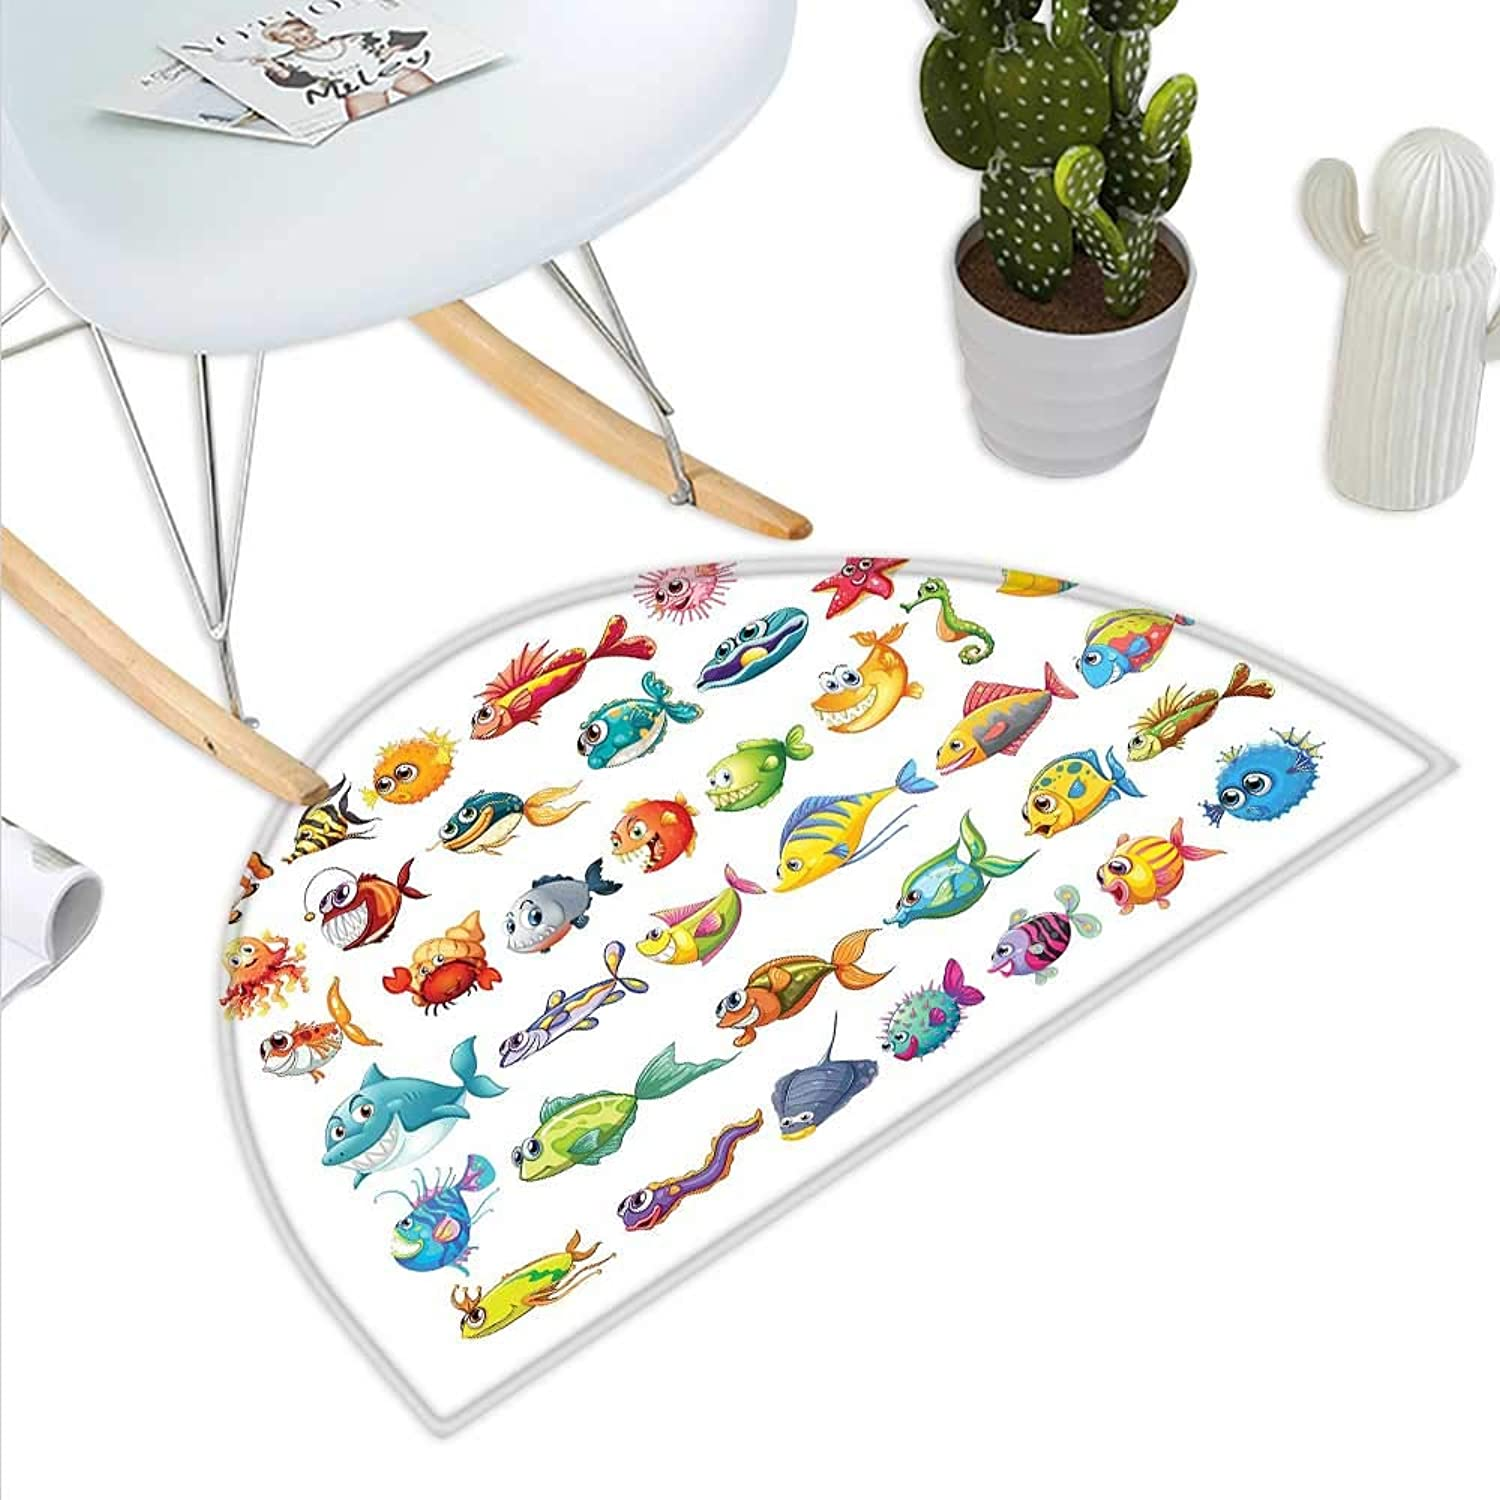 Fish Semicircle Doormat Collection of Sea Creatures Cartoon Style Vivid colors Happy Fish Lined Up Abstract Halfmoon doormats H 43.3  xD 64.9  Multicolor